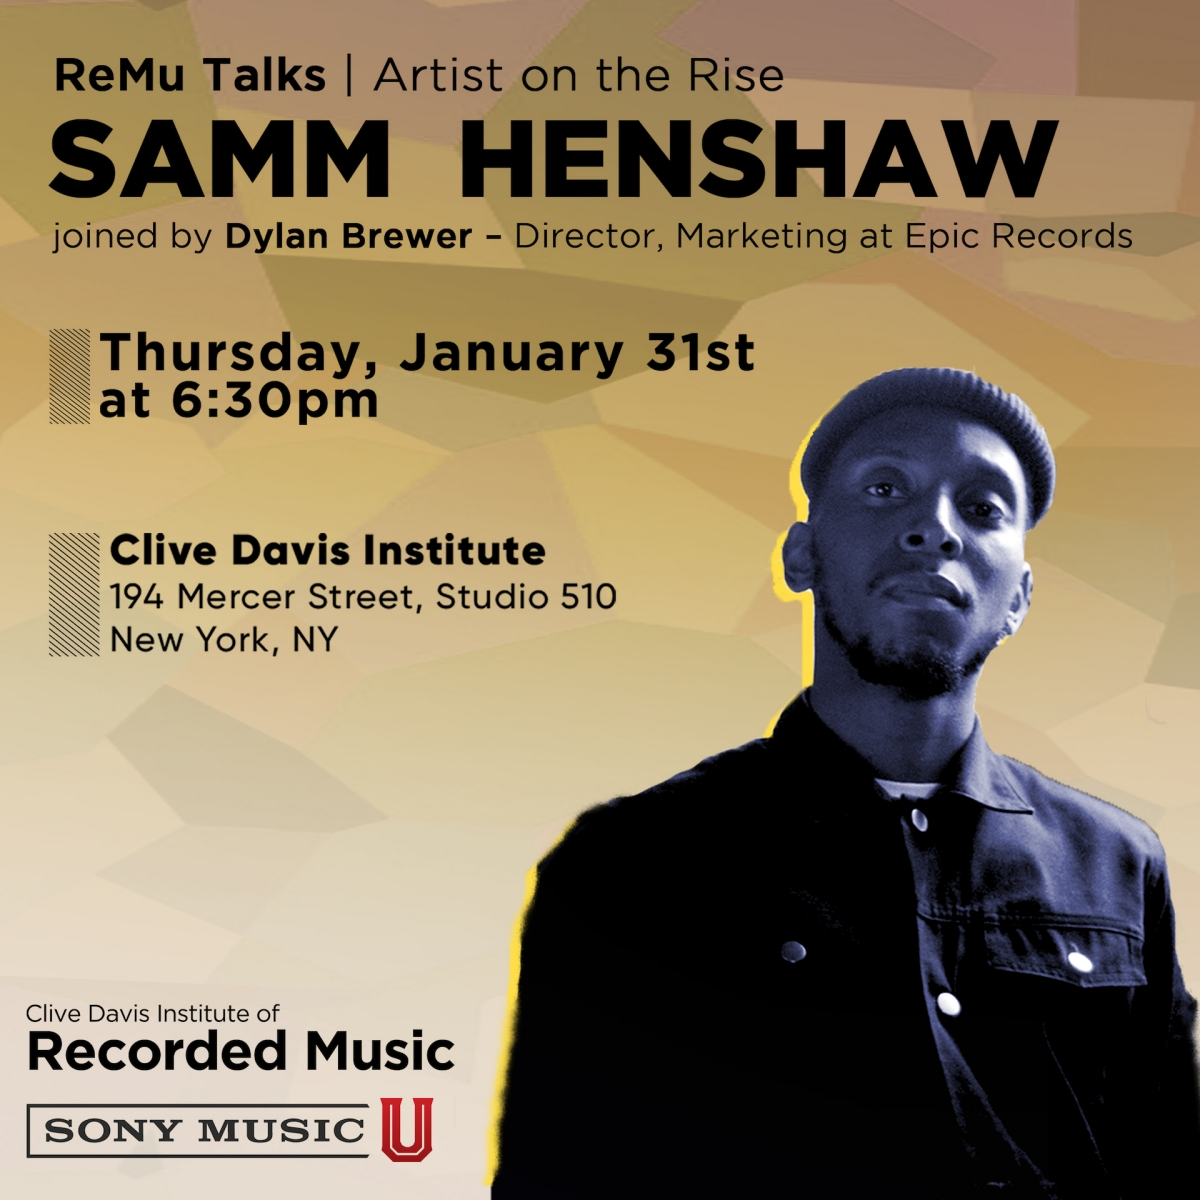 flyer to promote Samm Henshaw event at NYU